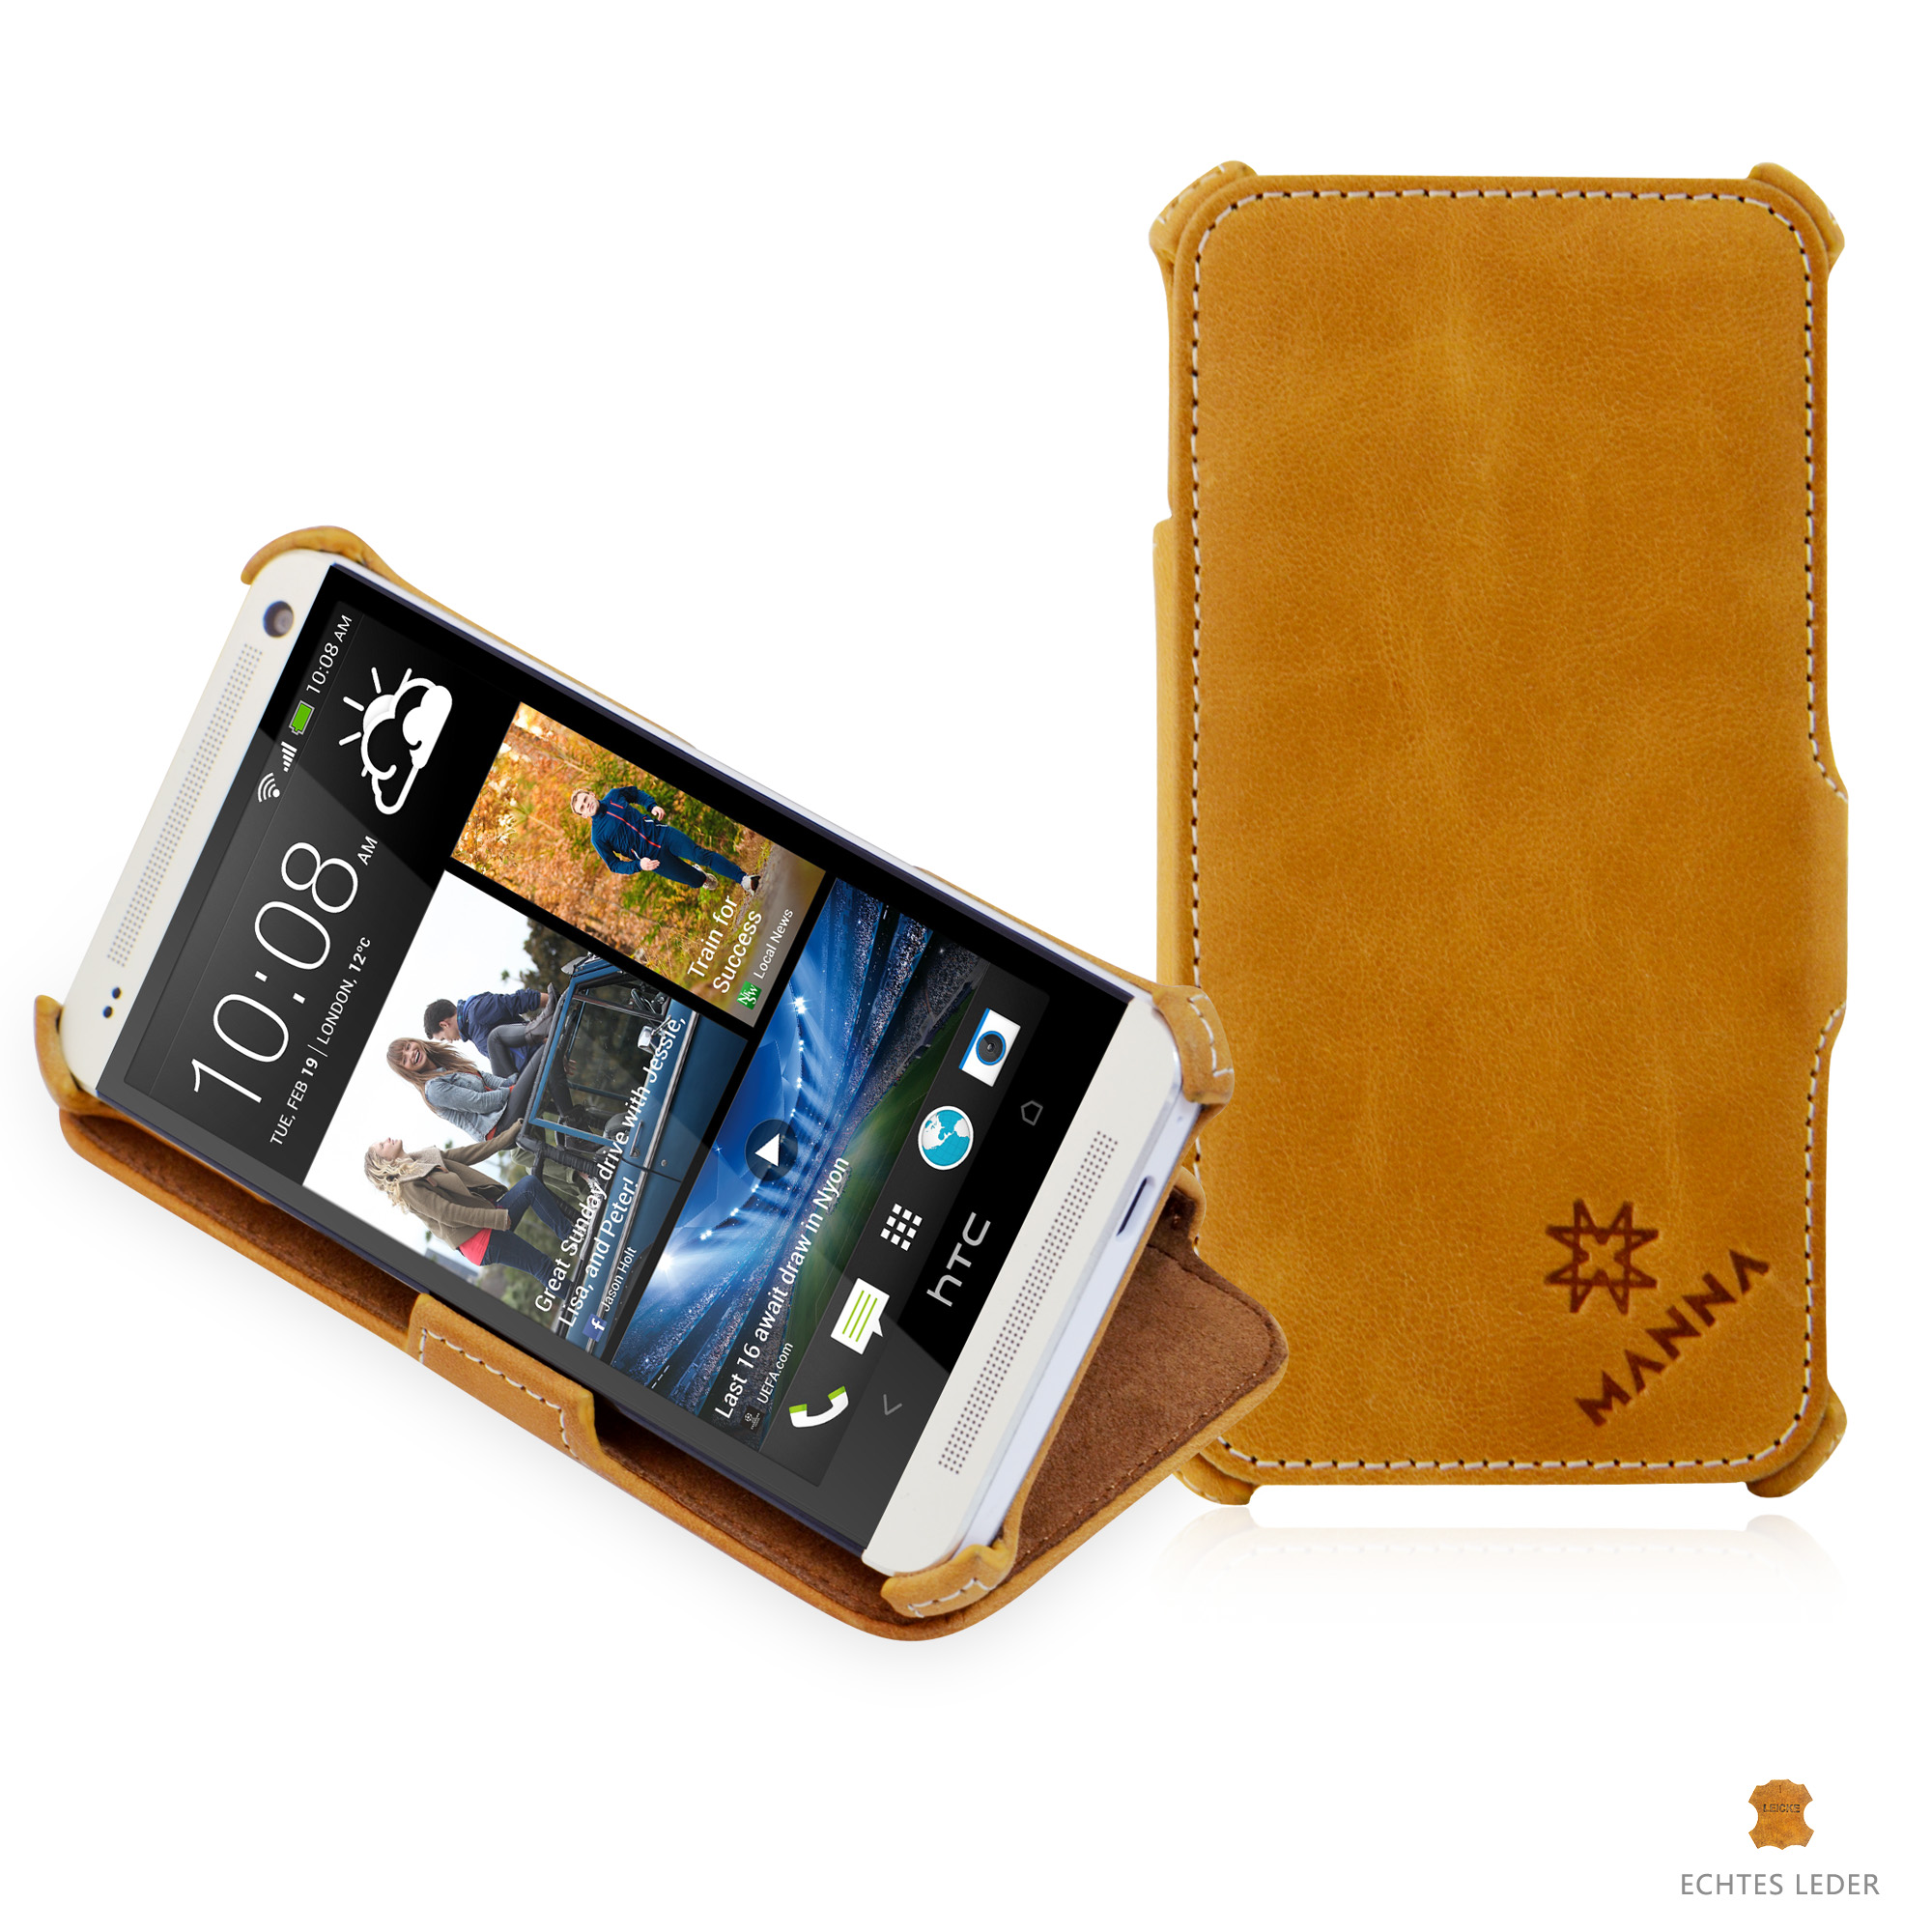 e5a209fa35f MANNA UltraSlim HTC One M7 Flip Case Protective Cover Wallet Stand MN60096